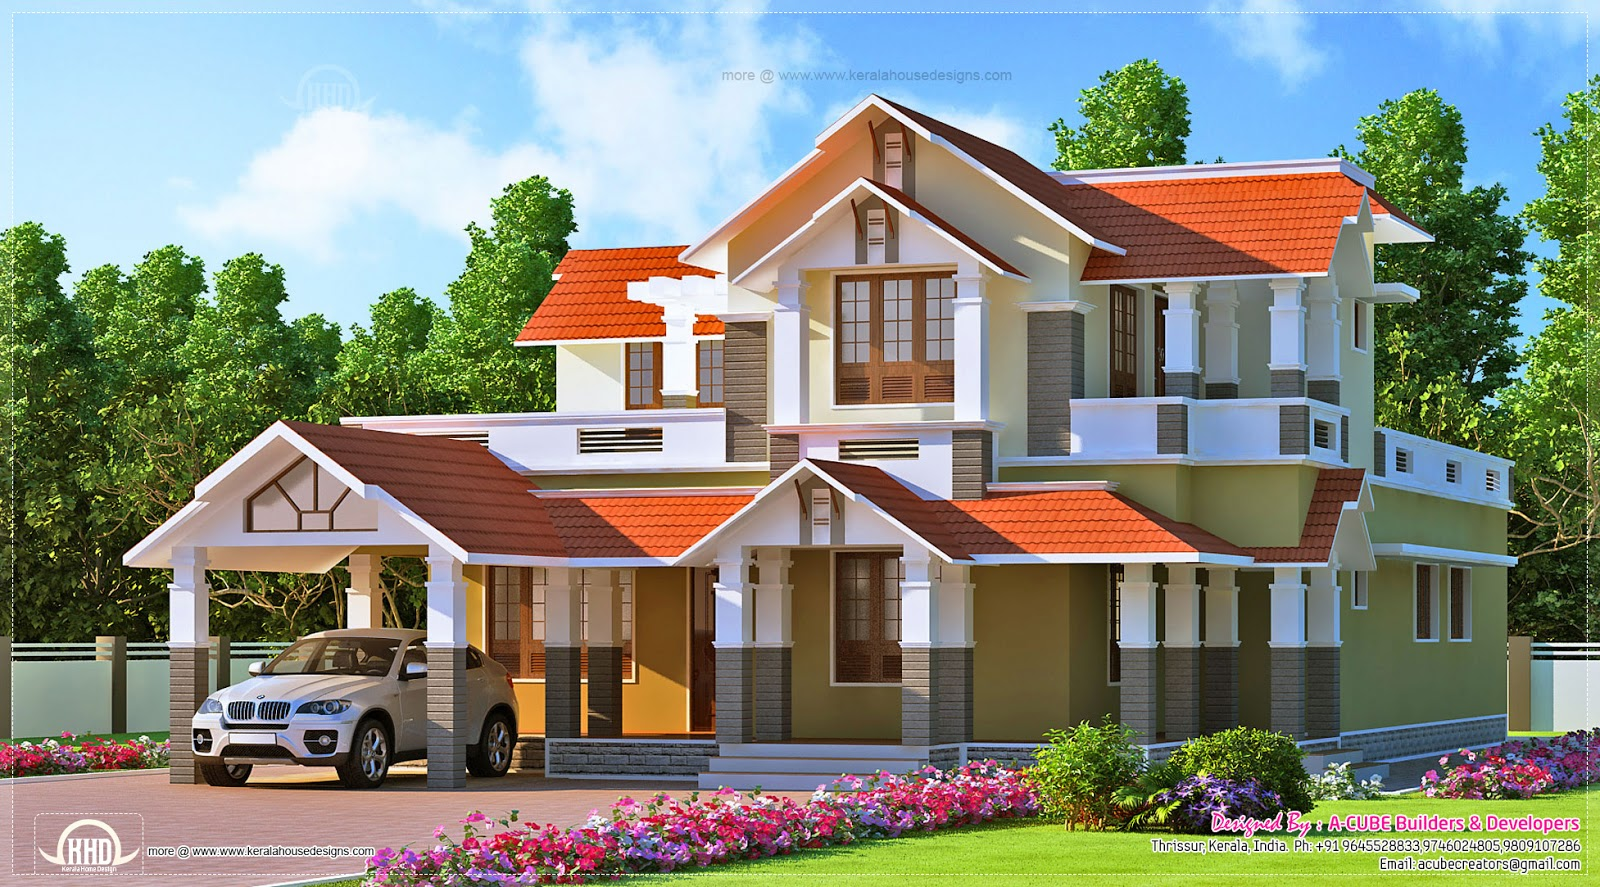 Eco friendly houses kerala style dream home design for Drem homes